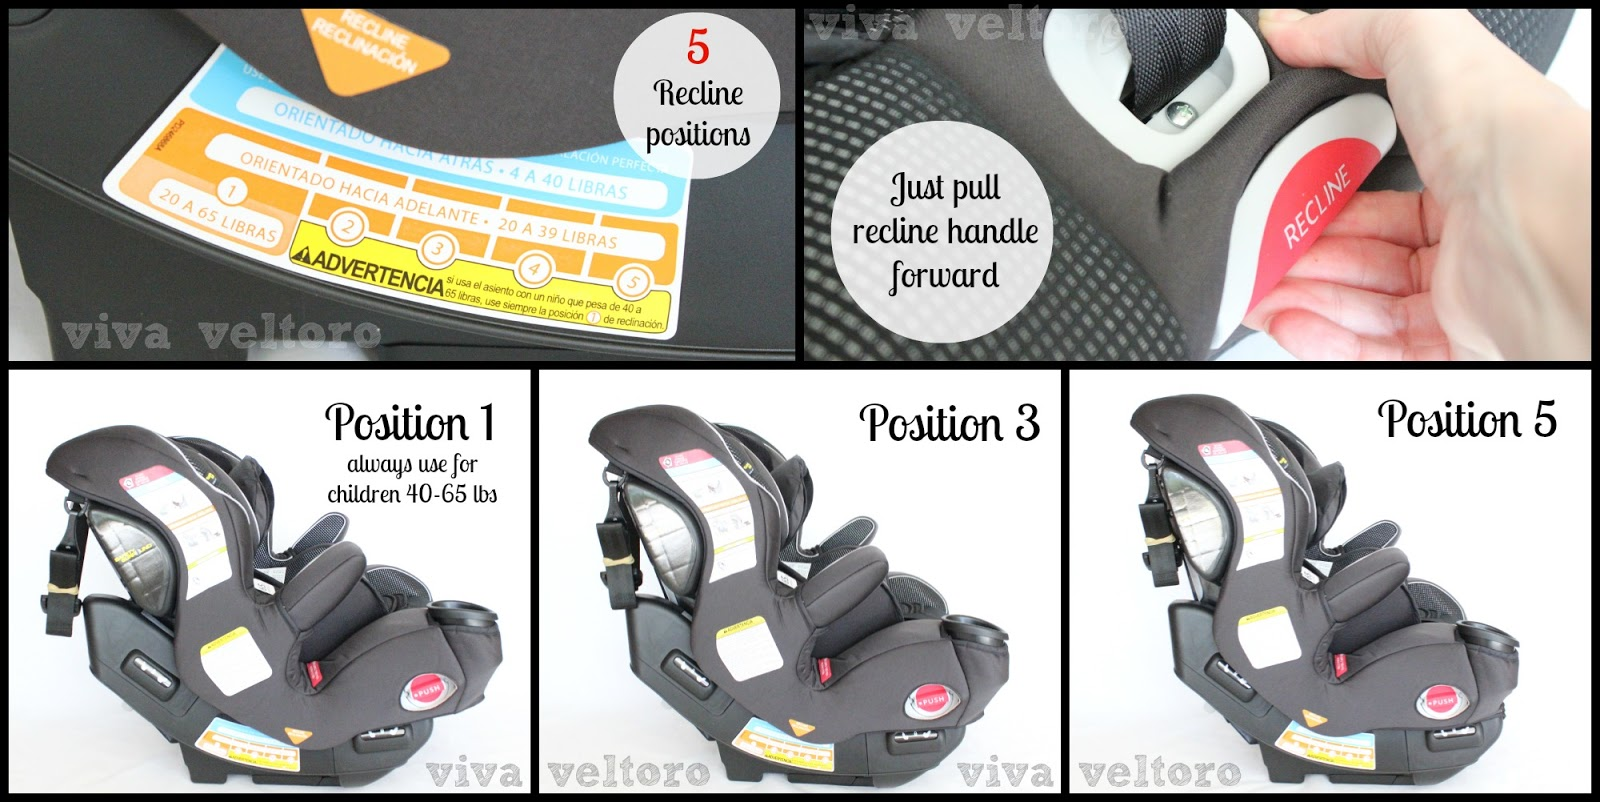 The Graco Smart Seat Has Excellent Features To Keep Your Little One Safe Such As Safety Surround Side Impact Technology And Eps Energy Absorbing Foam